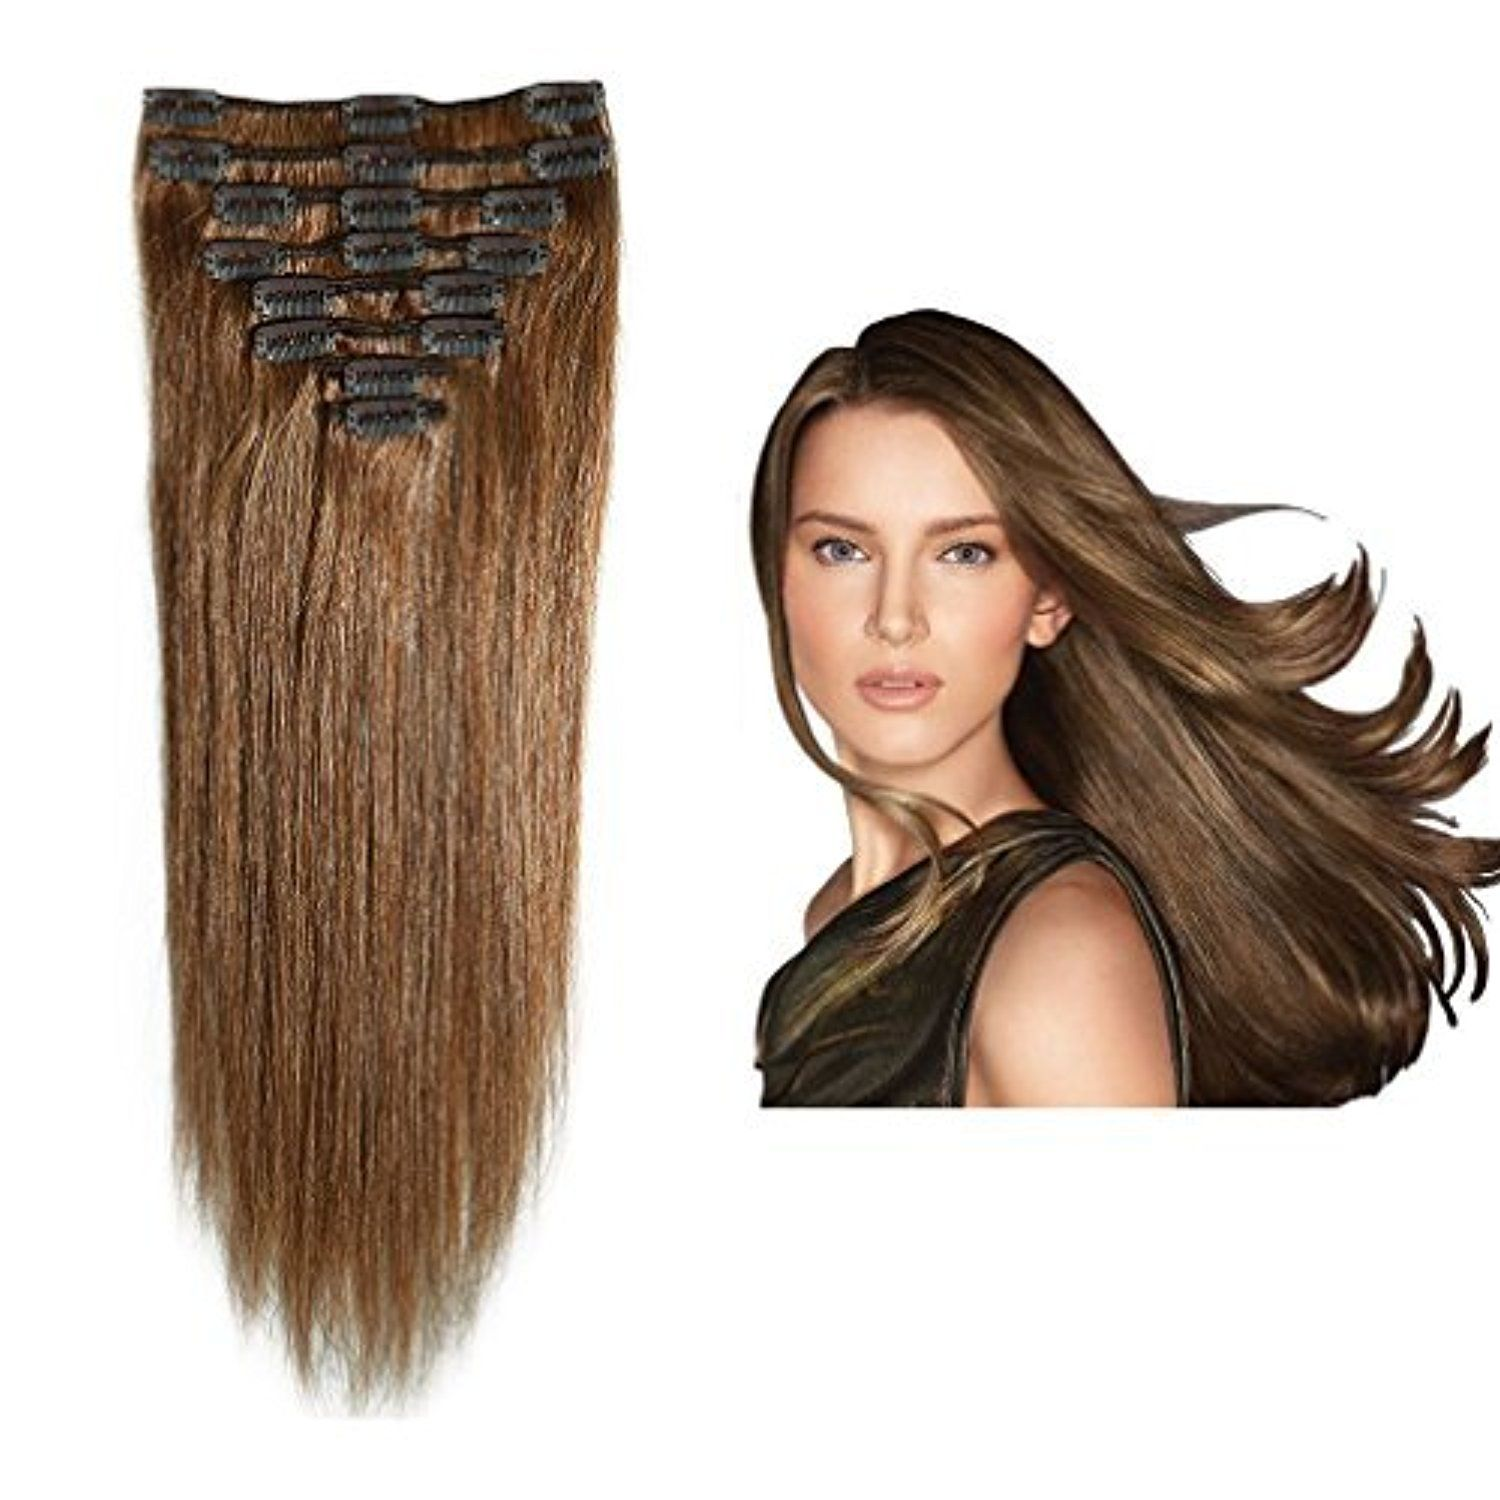 Clip In 100 Remy Human Hair Extensions 10 24 Grade 7a Quality Full